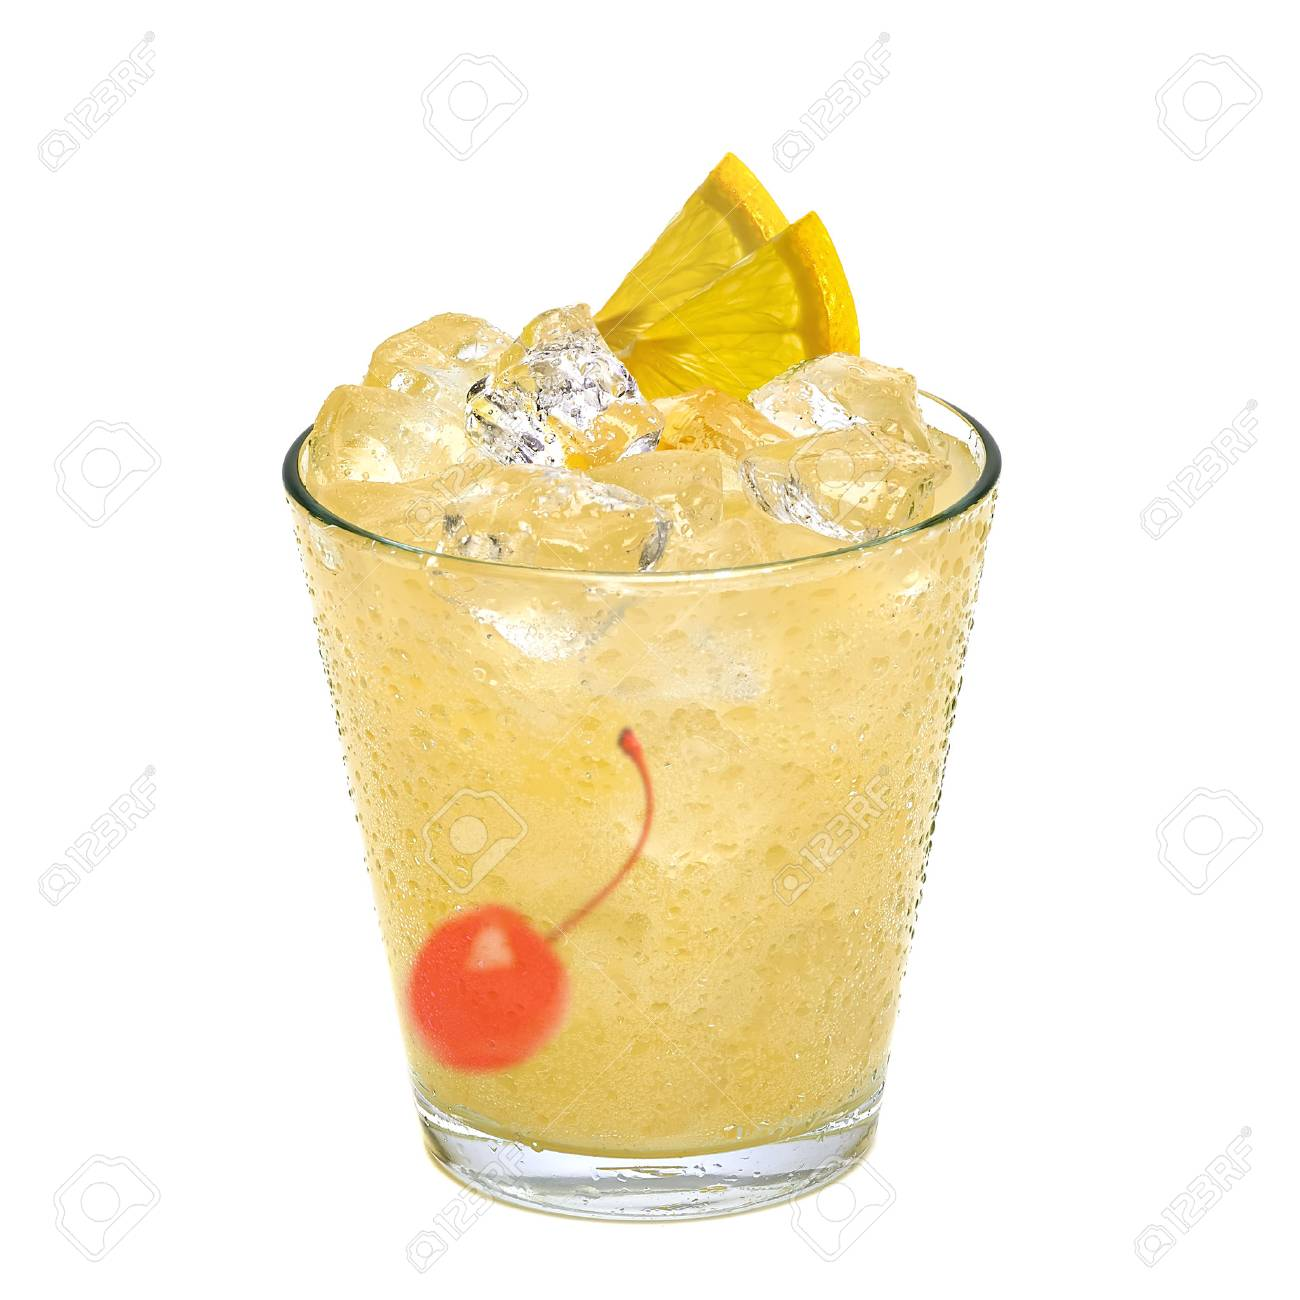 sour cocktail with maraschino cherry and lemon slice isolated on white background - 57799898